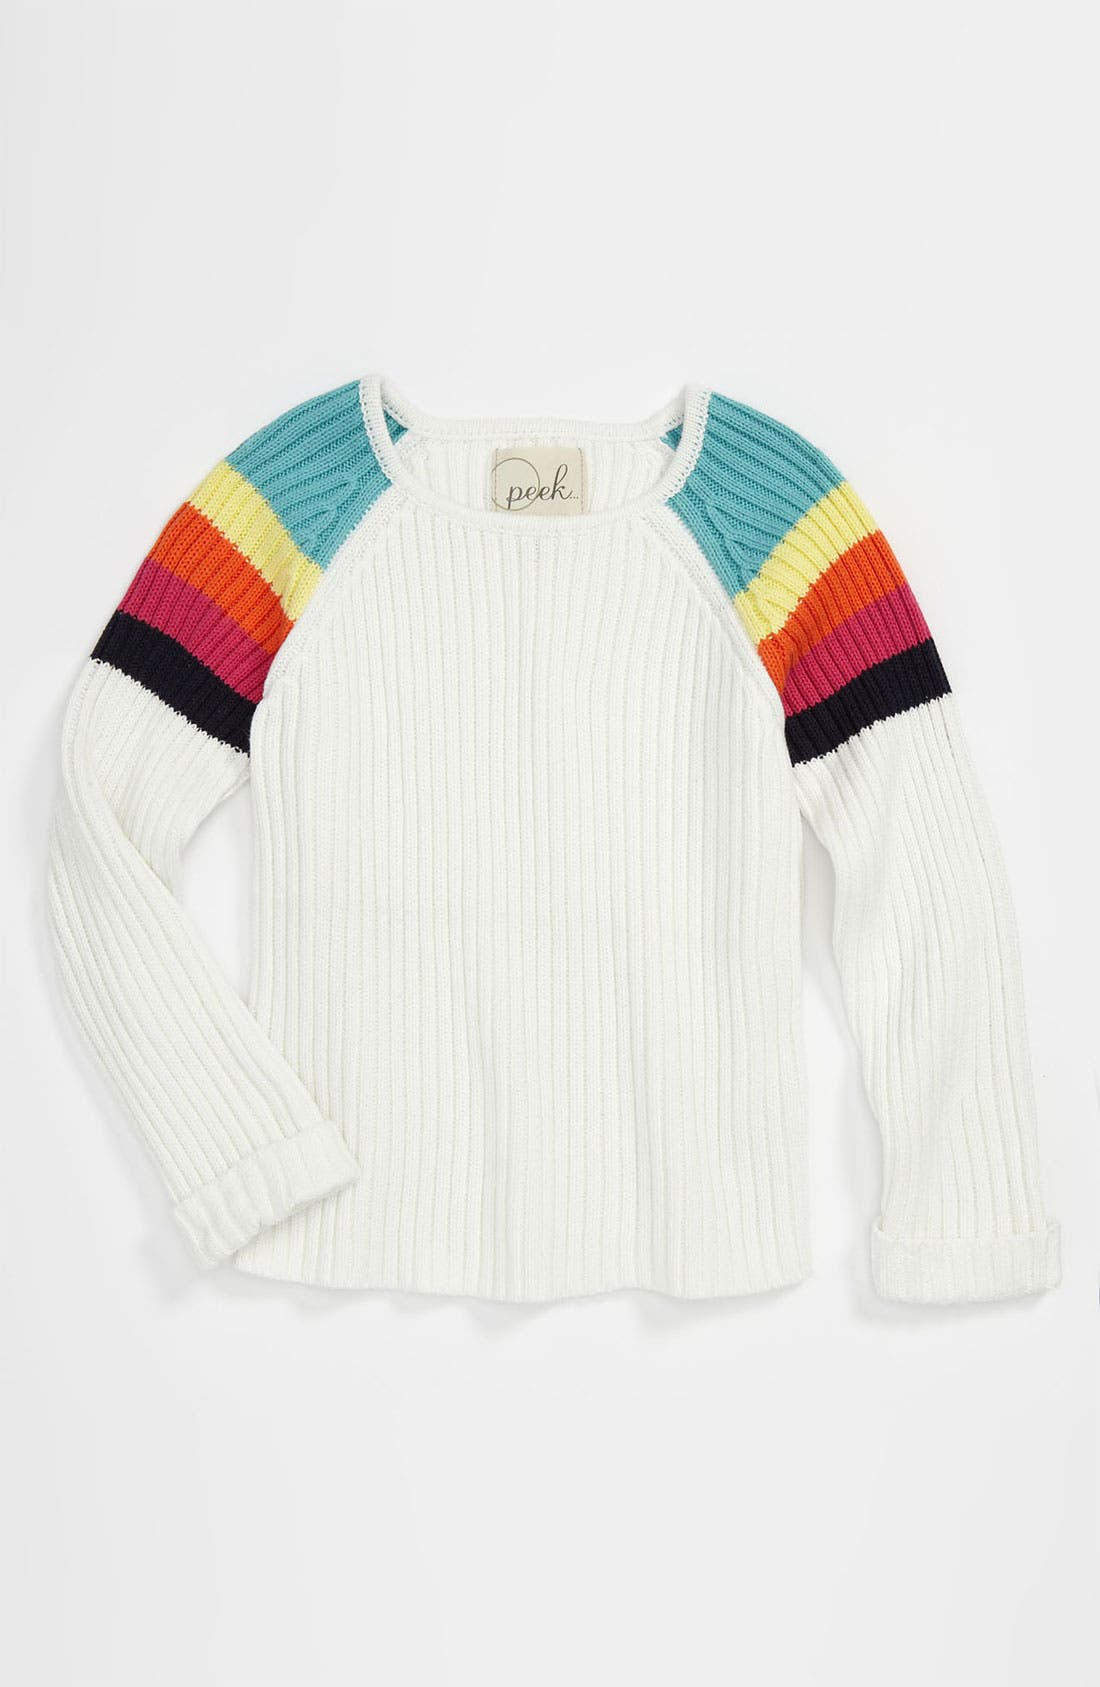 Main Image - Peek 'Rainbow' Sweater (Toddler, Little Girls & Big Girls)